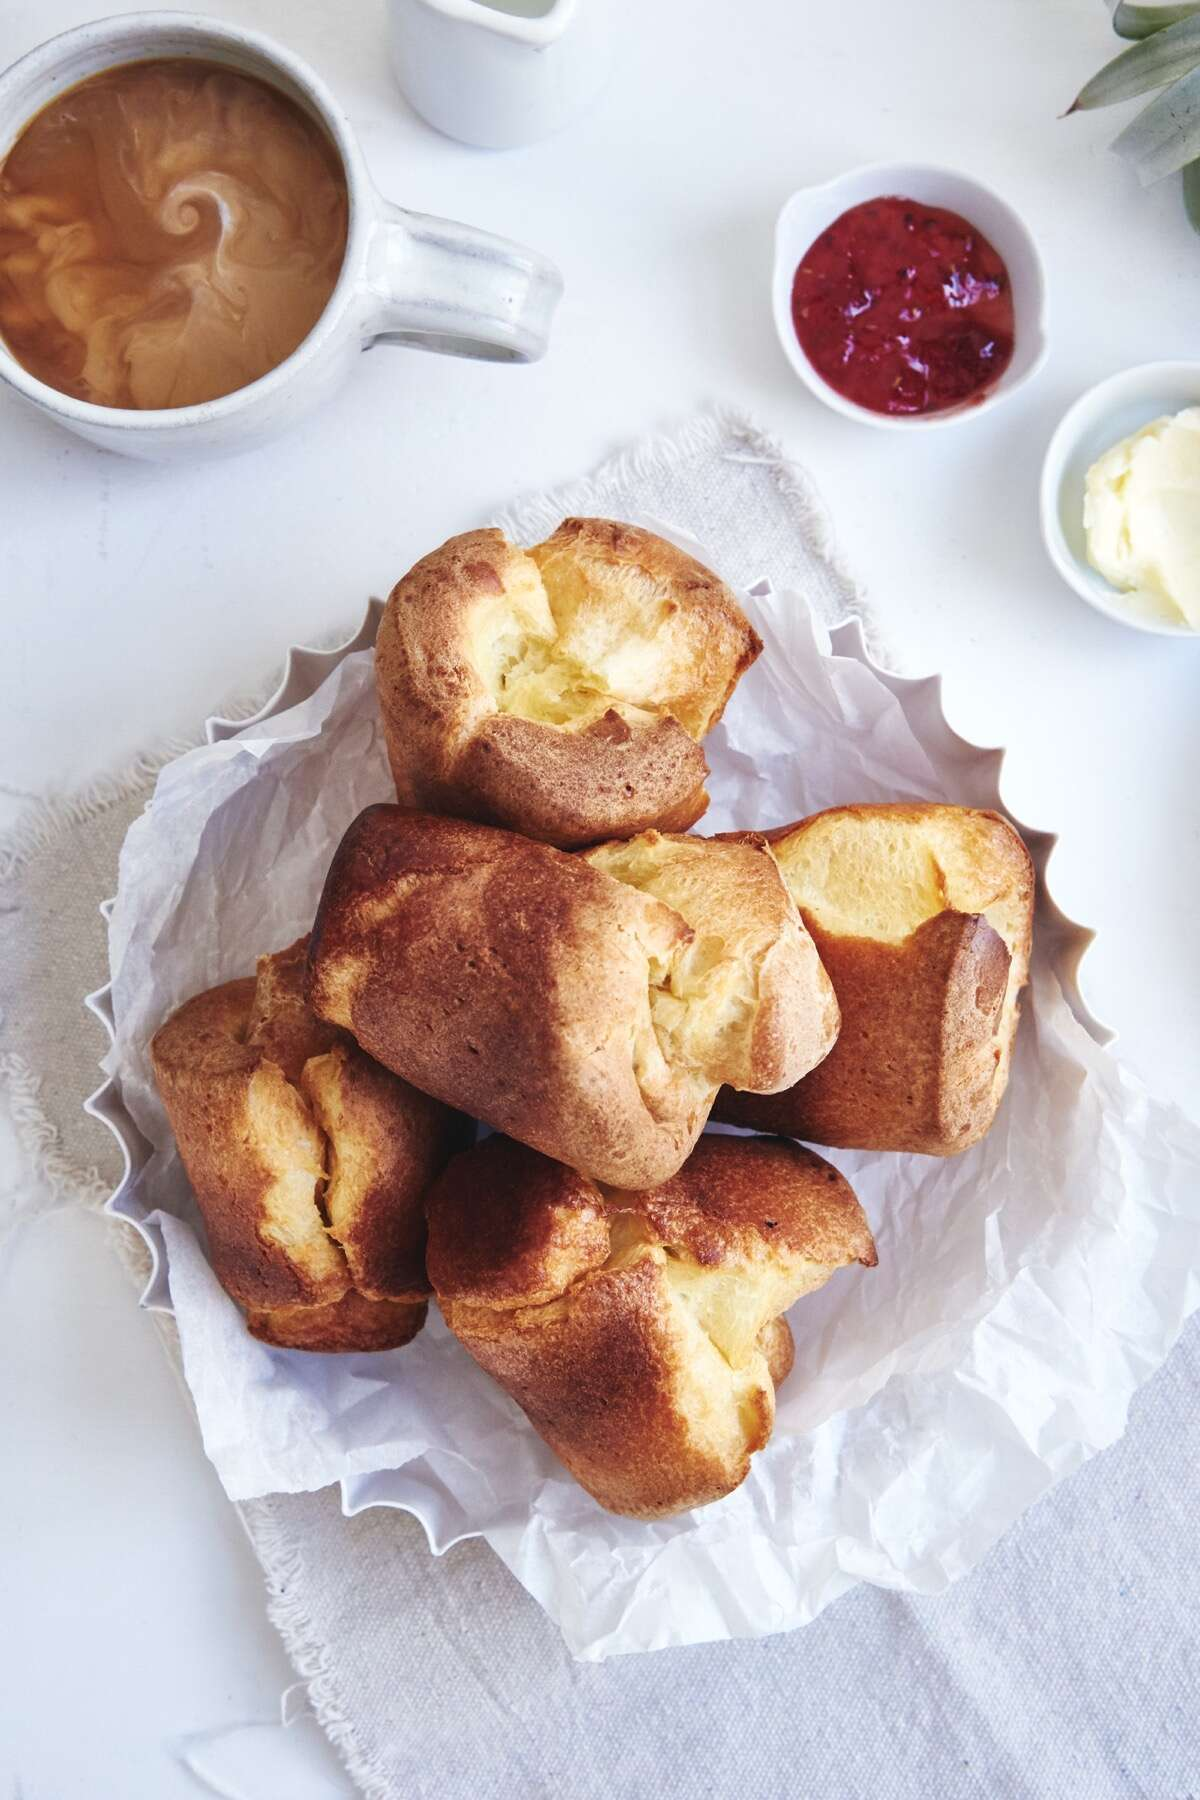 Basket of sourdough popovers on a table with jam, butter, and a latte.